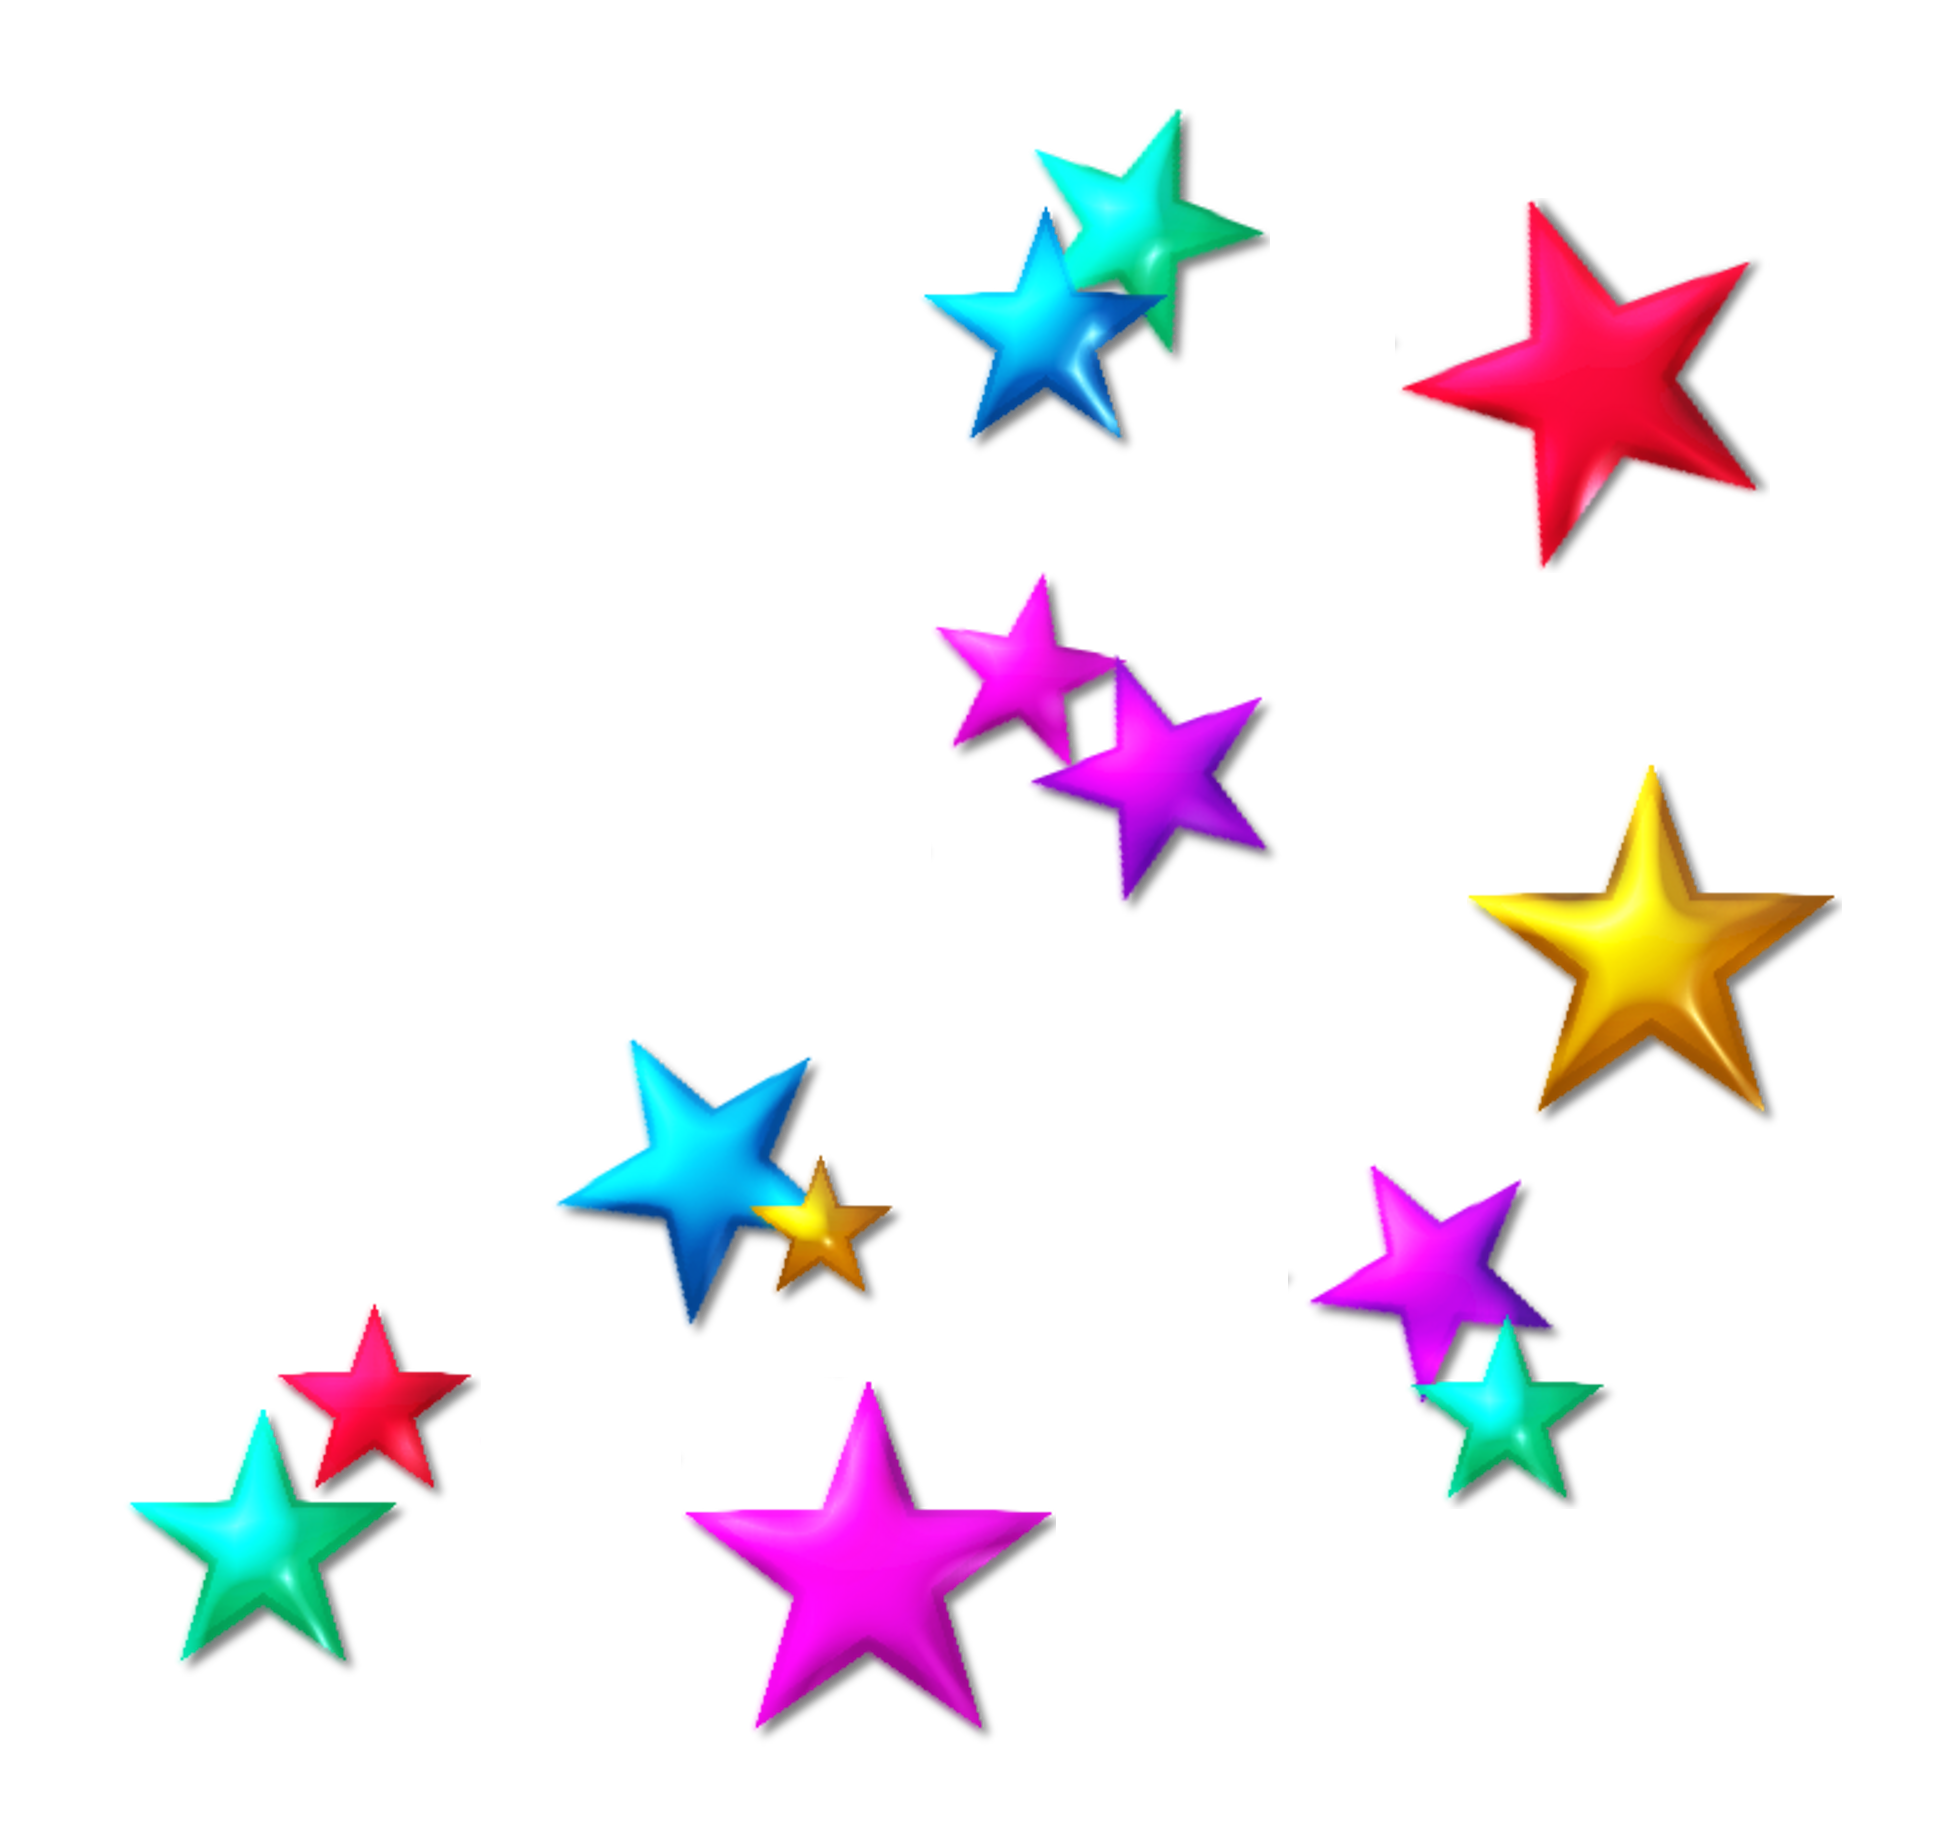 Star images png. Stars cartoon save our